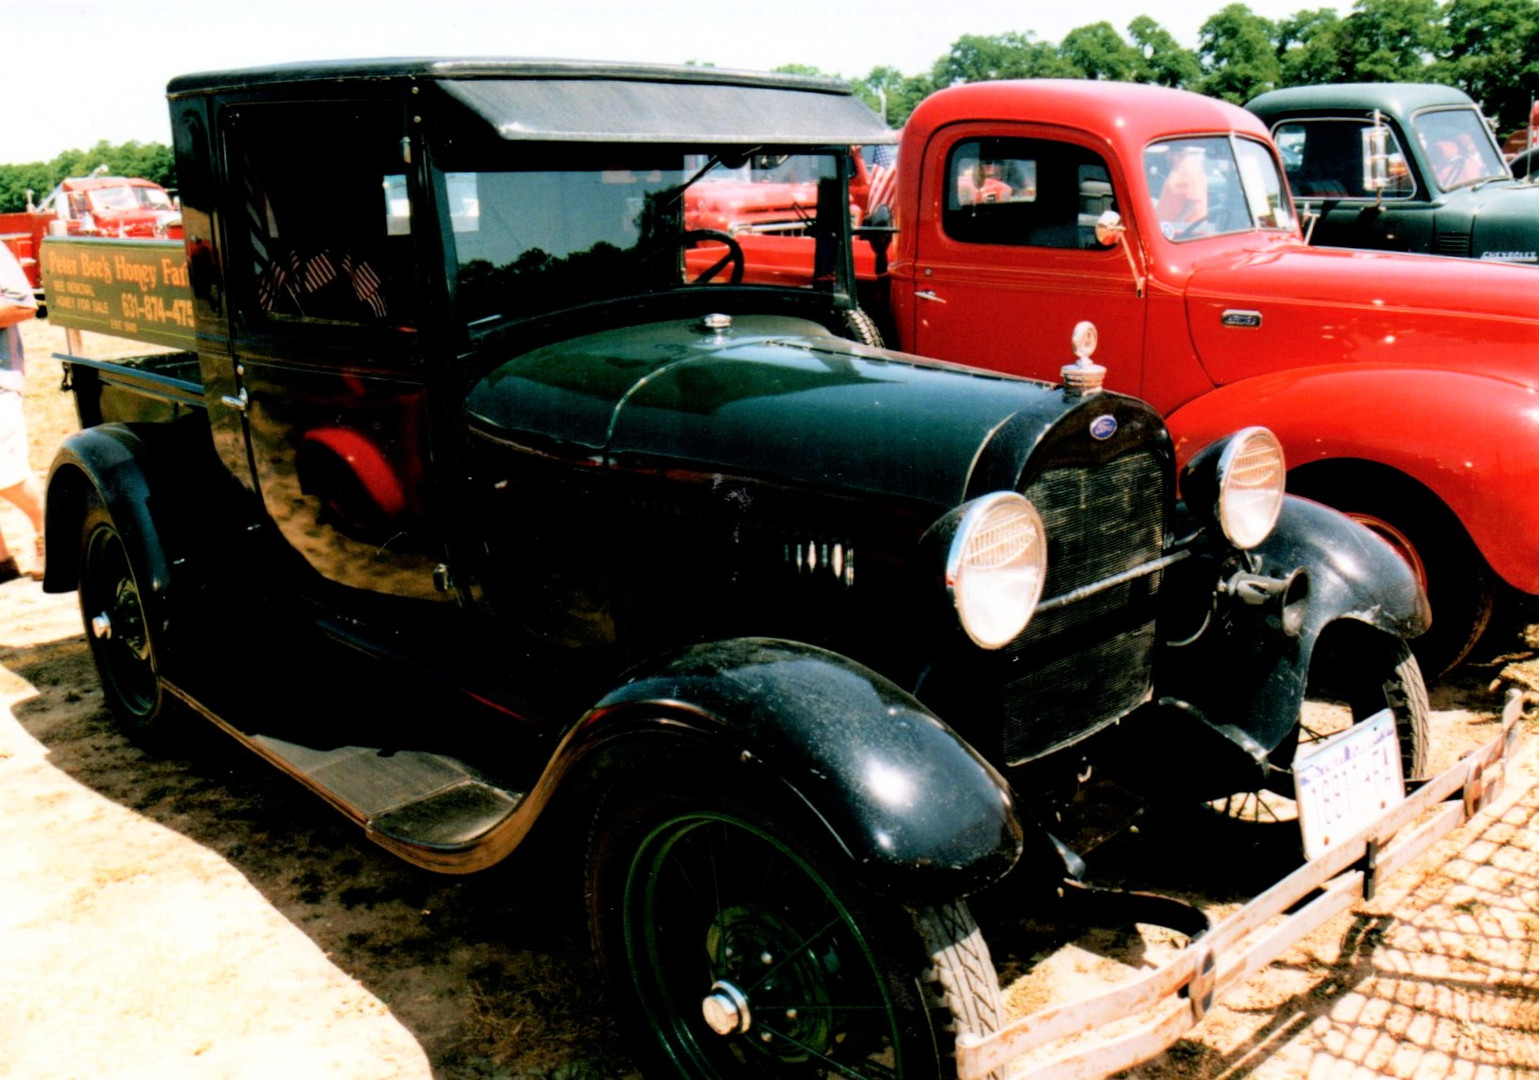 1929 Ford Model A pickup - Peter Bizzoso